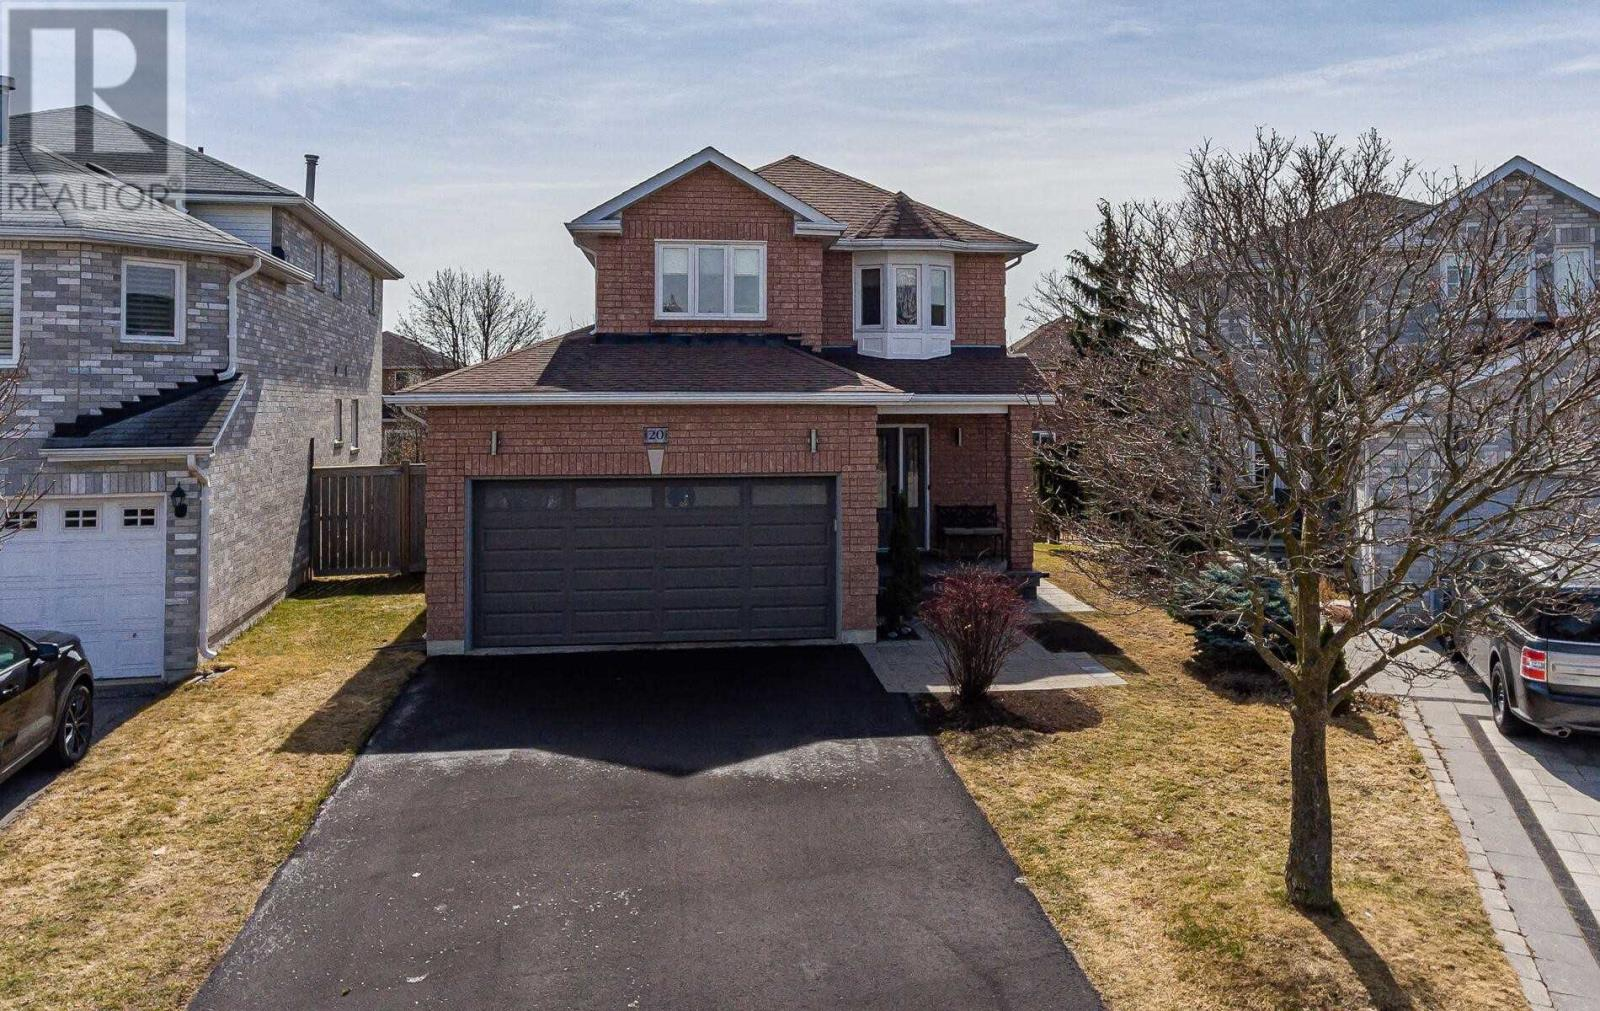 20 TAOS CRT, Richmond Hill, Ontario, Canada L4C0G5, 3 Bedrooms Bedrooms, Register to View ,3 BathroomsBathrooms,House,For Sale,Taos,N5169934